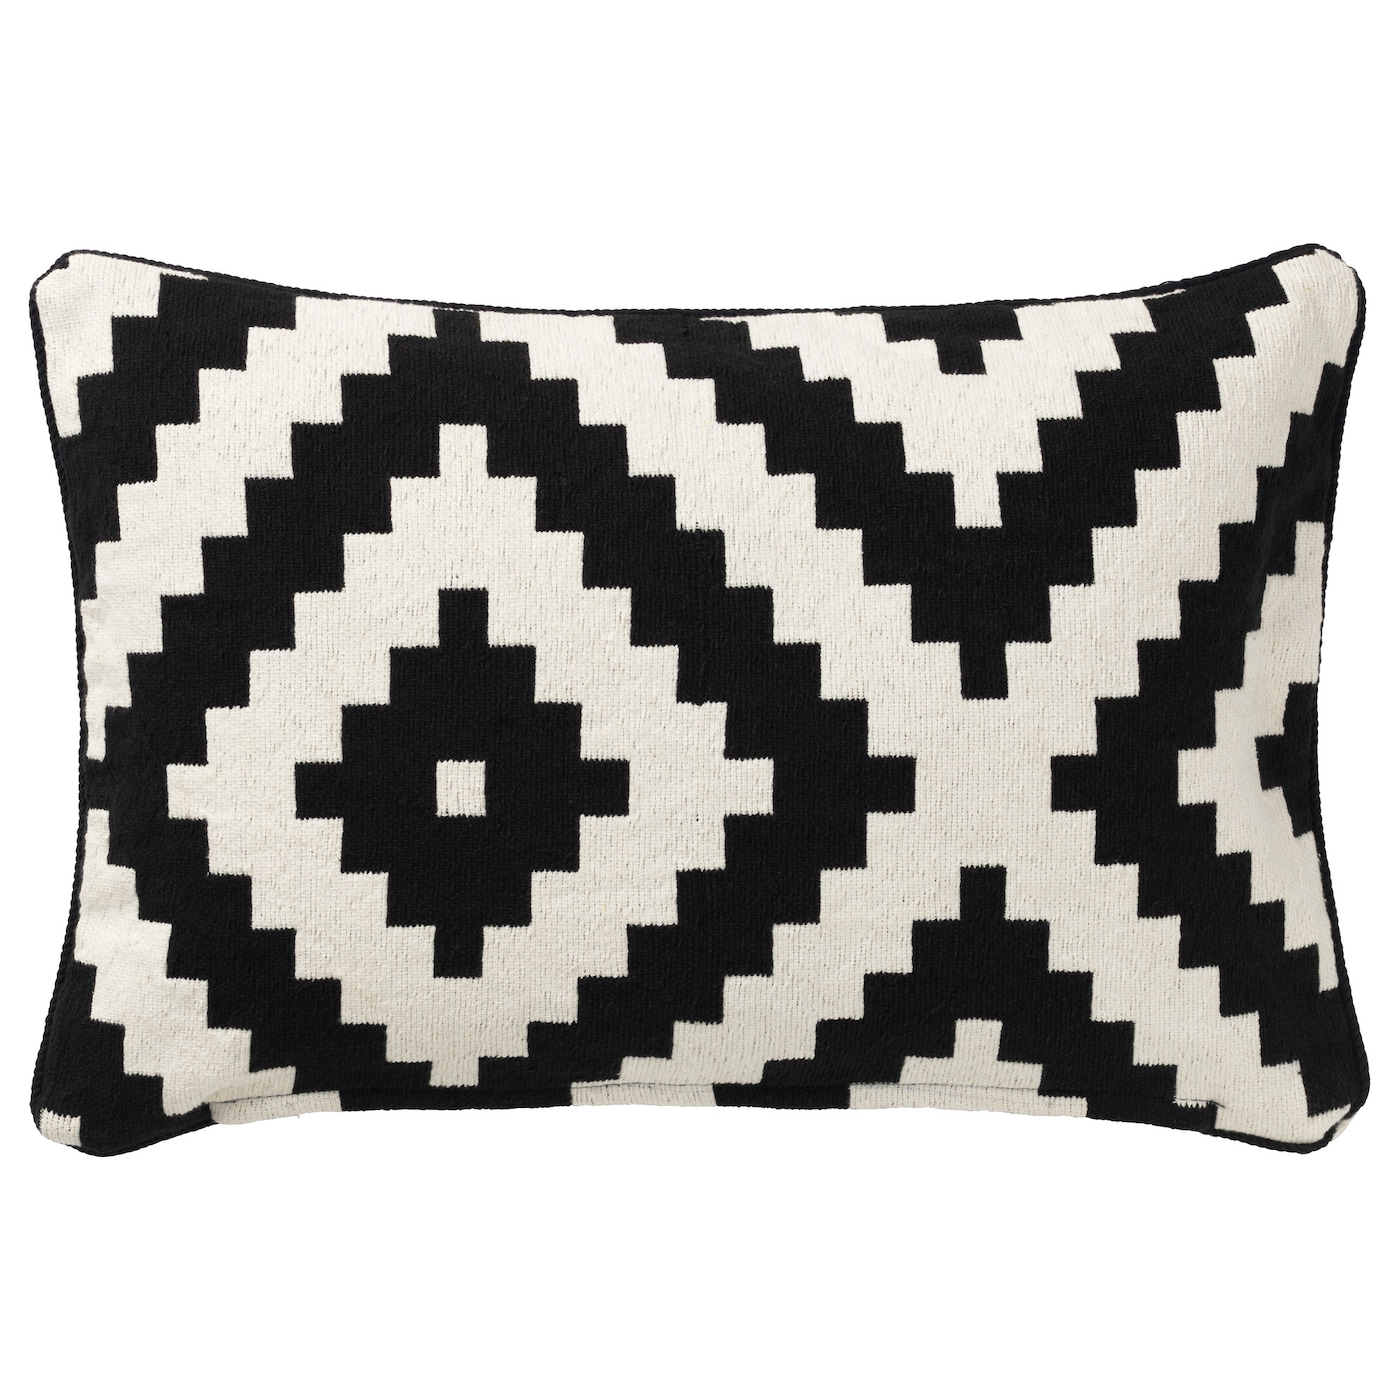 lappljung ruta cushion cover white black 40x65 cm ikea. Black Bedroom Furniture Sets. Home Design Ideas